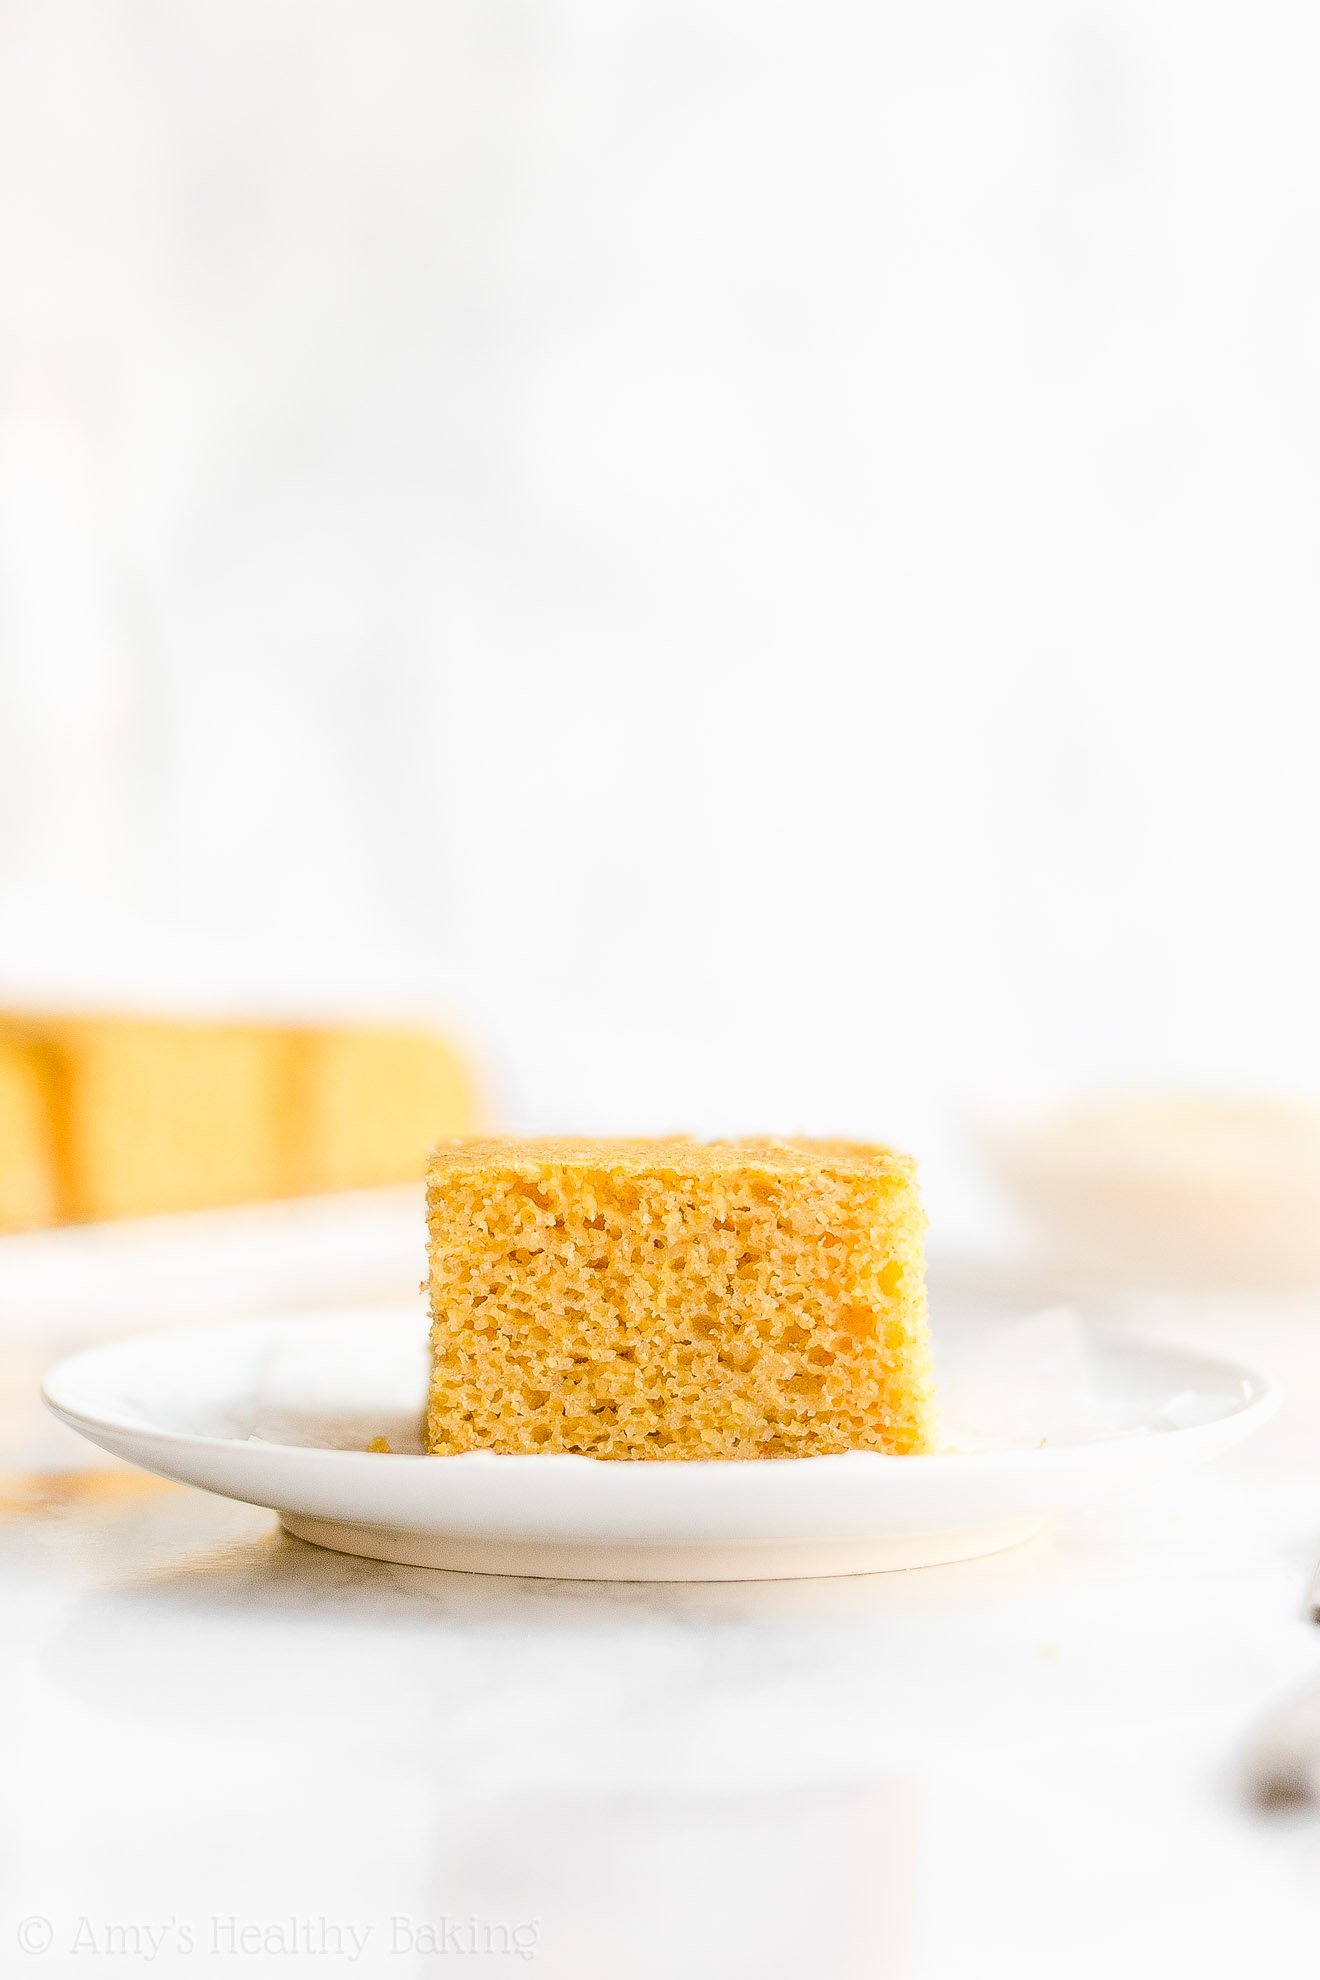 Easy Healthy Clean Eating Moist Low Calorie One-Bowl Cornbread